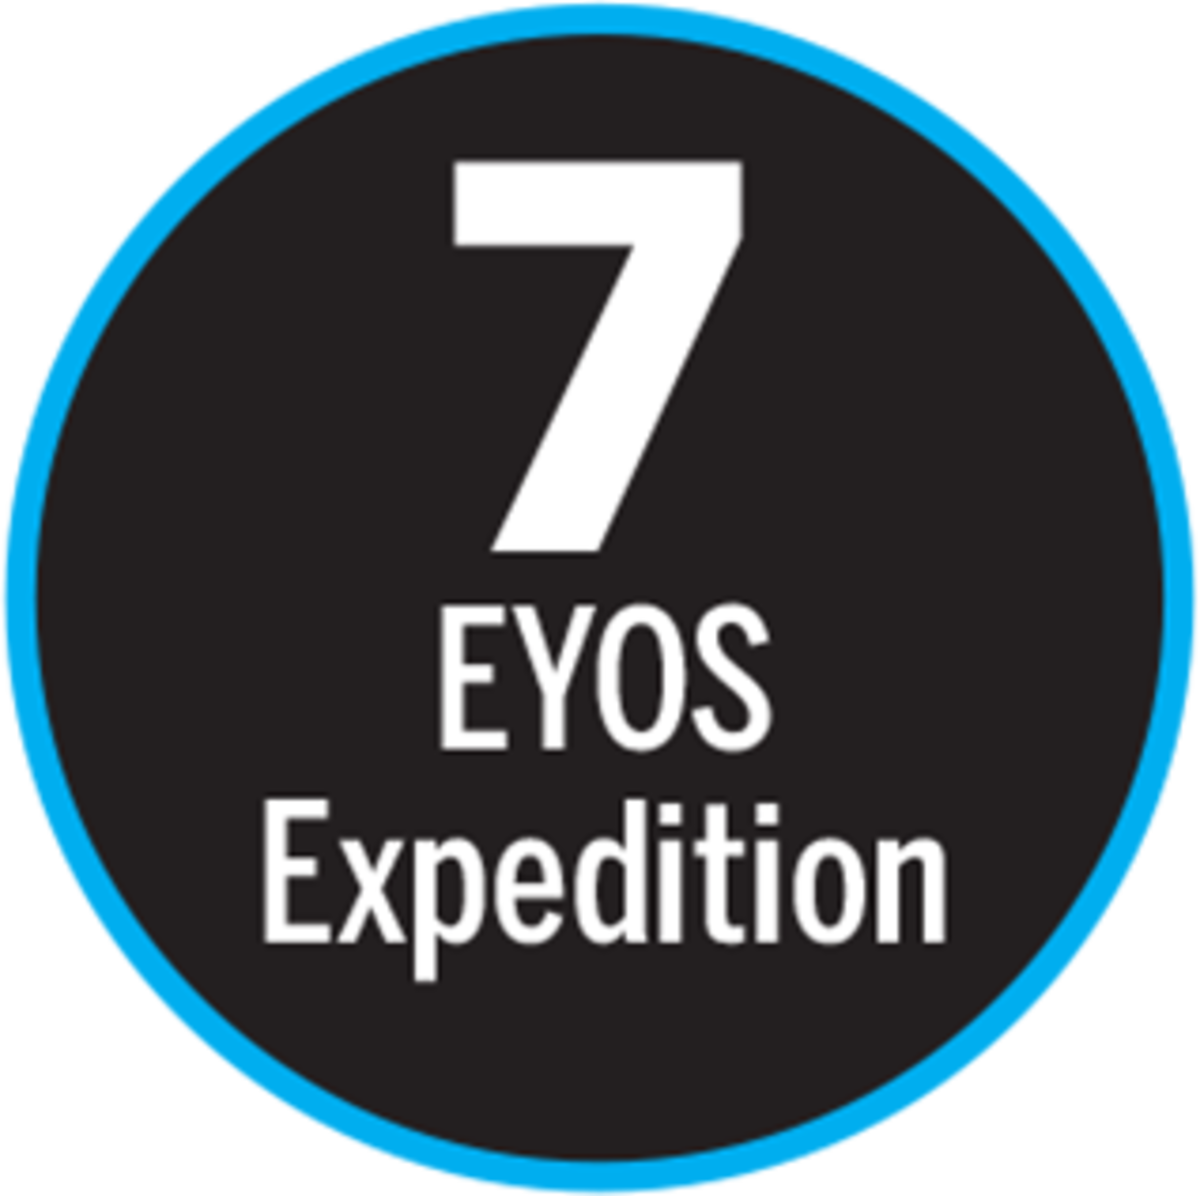 7-expedition